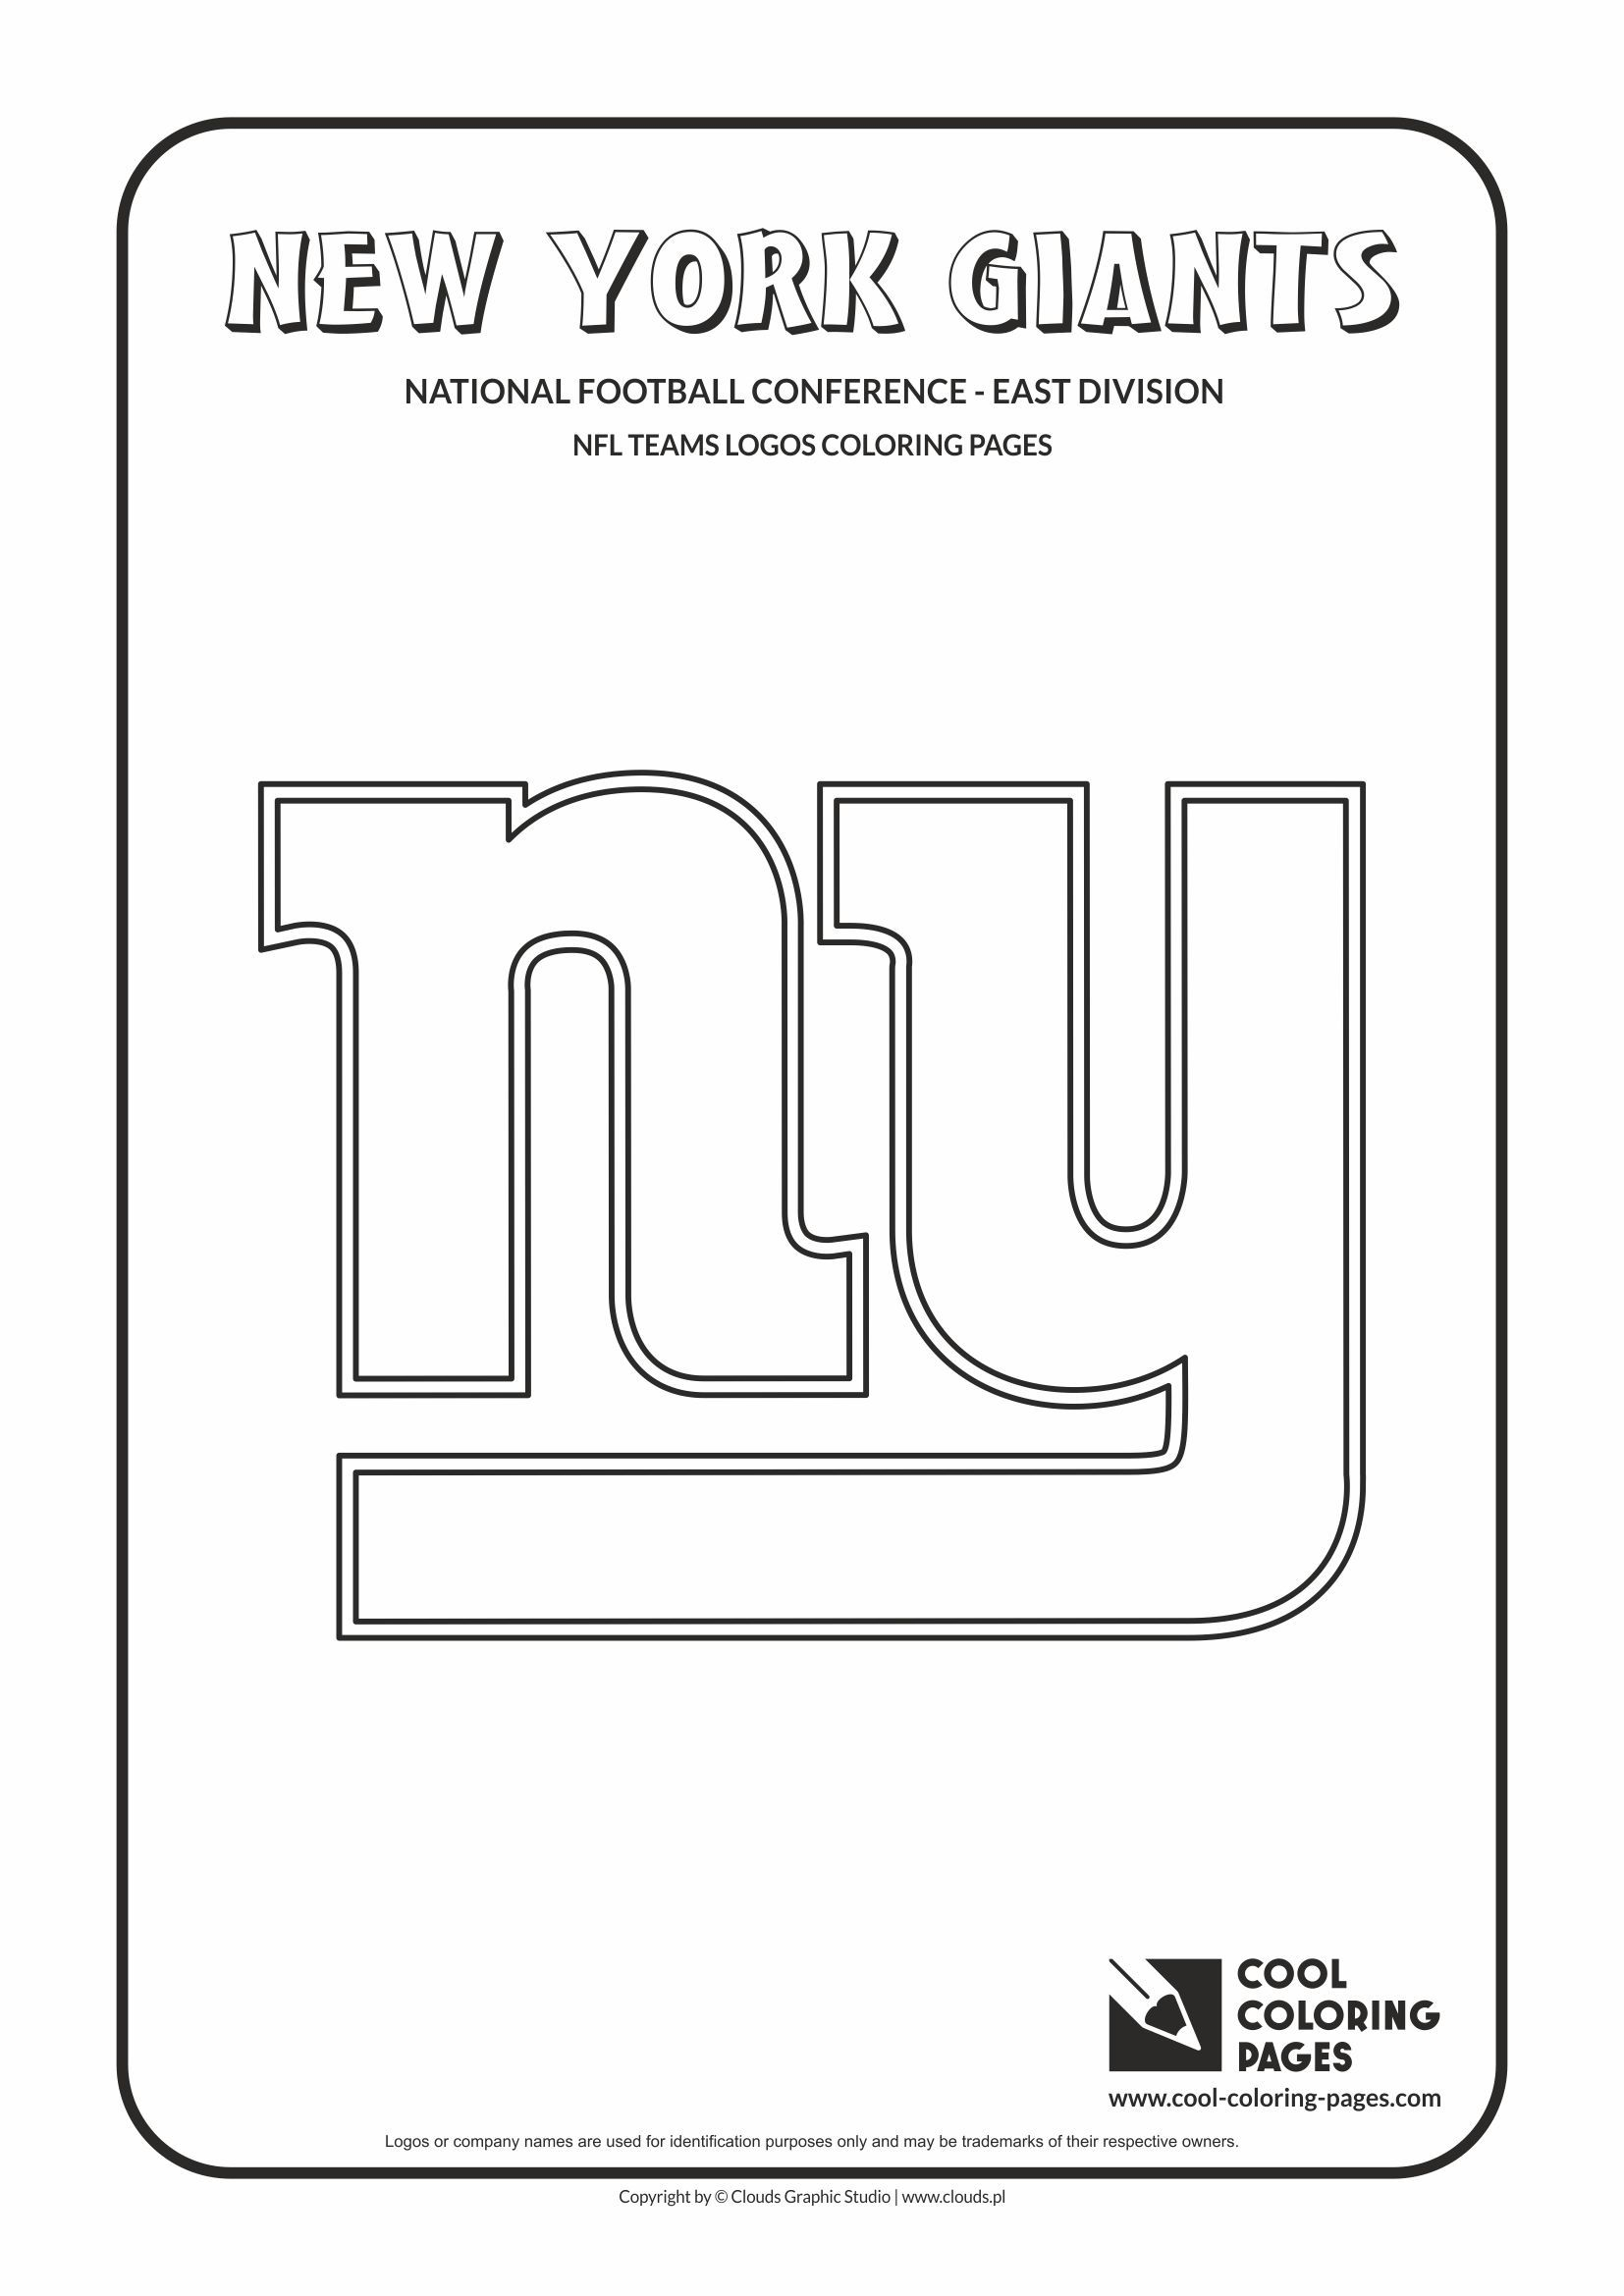 New York Giants Nfl American Football Teams Logos Coloring Pages